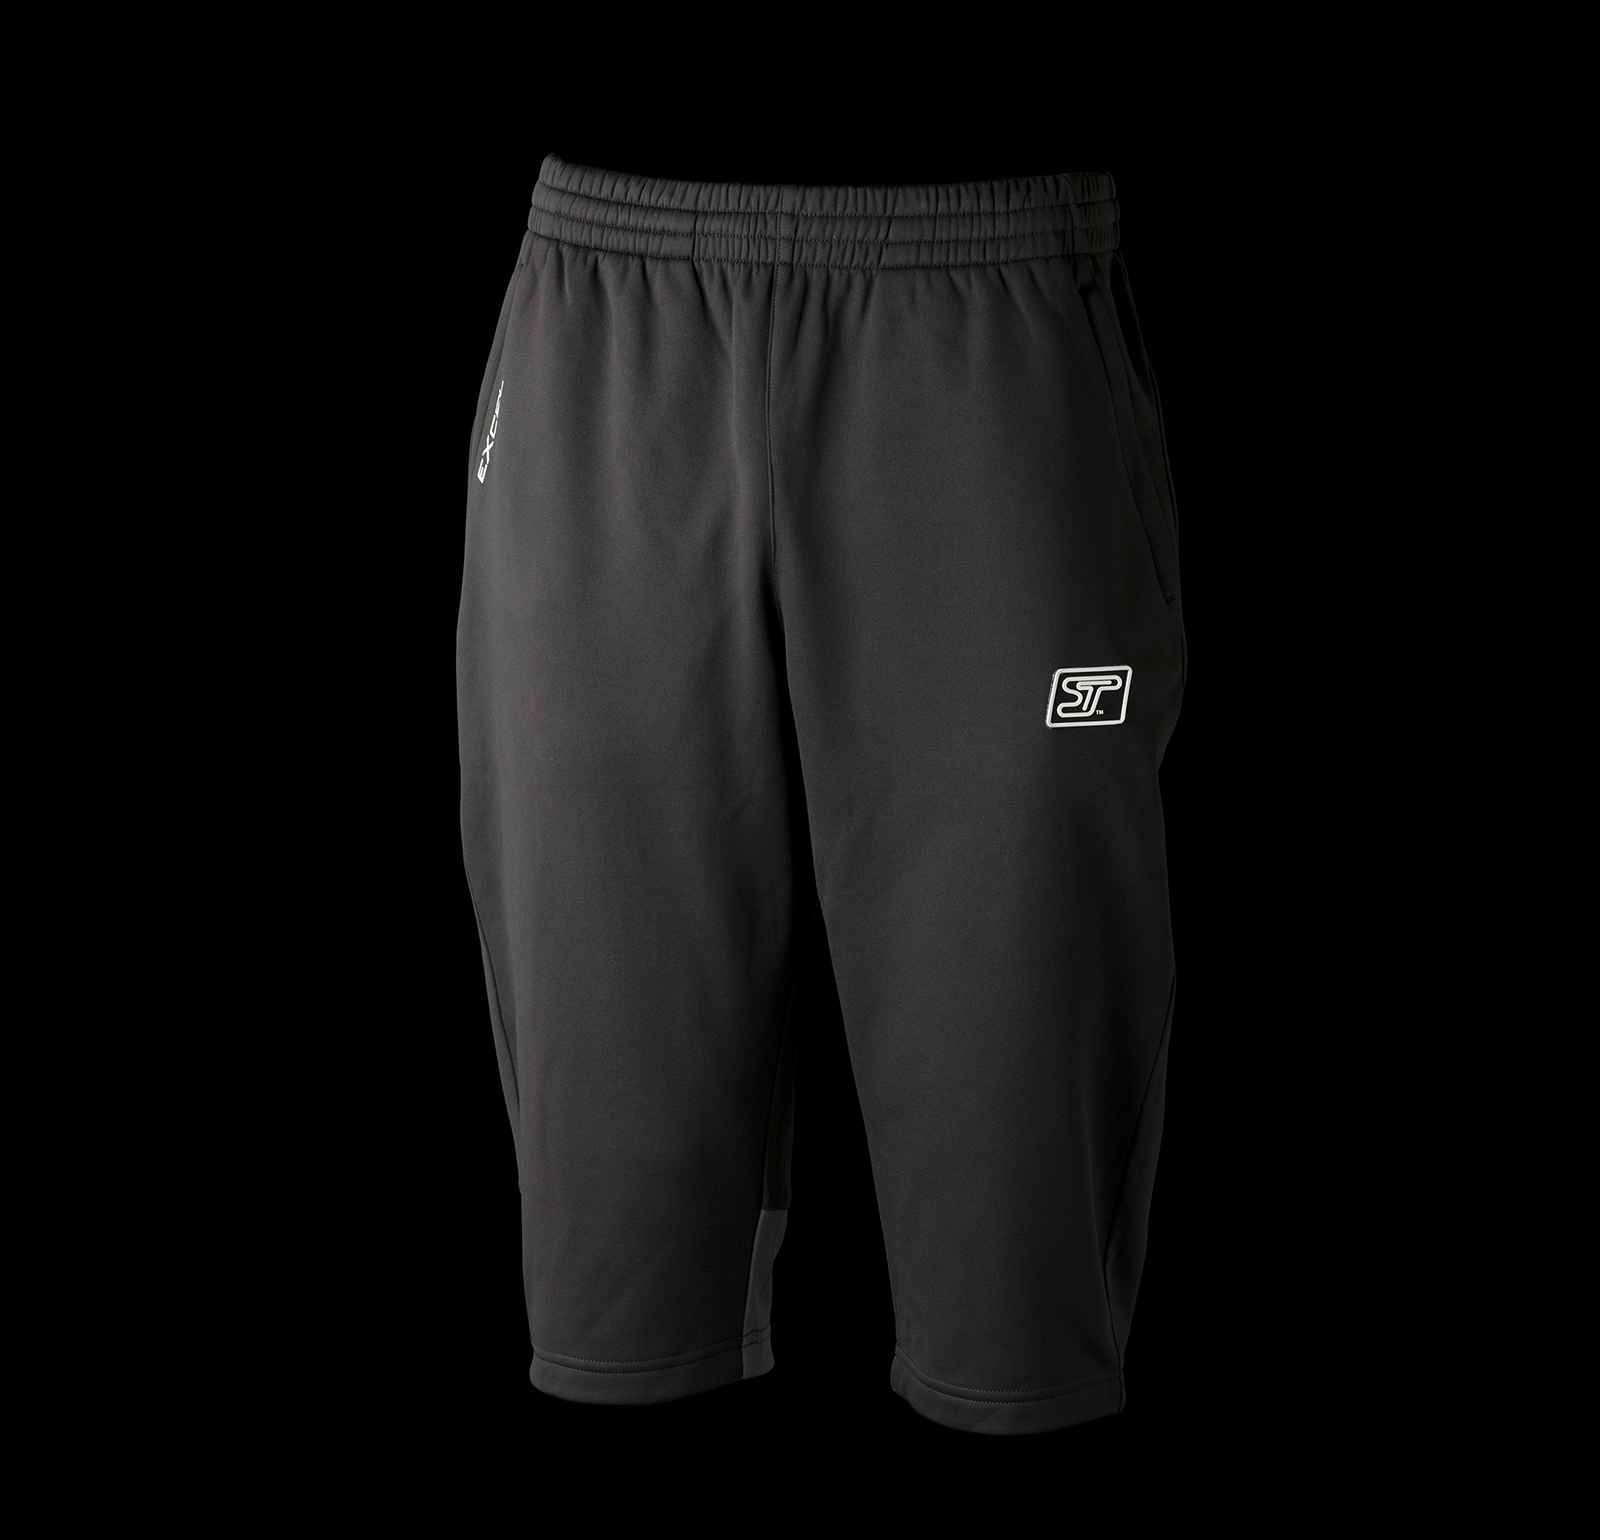 excel-3-4-pant-promo-04